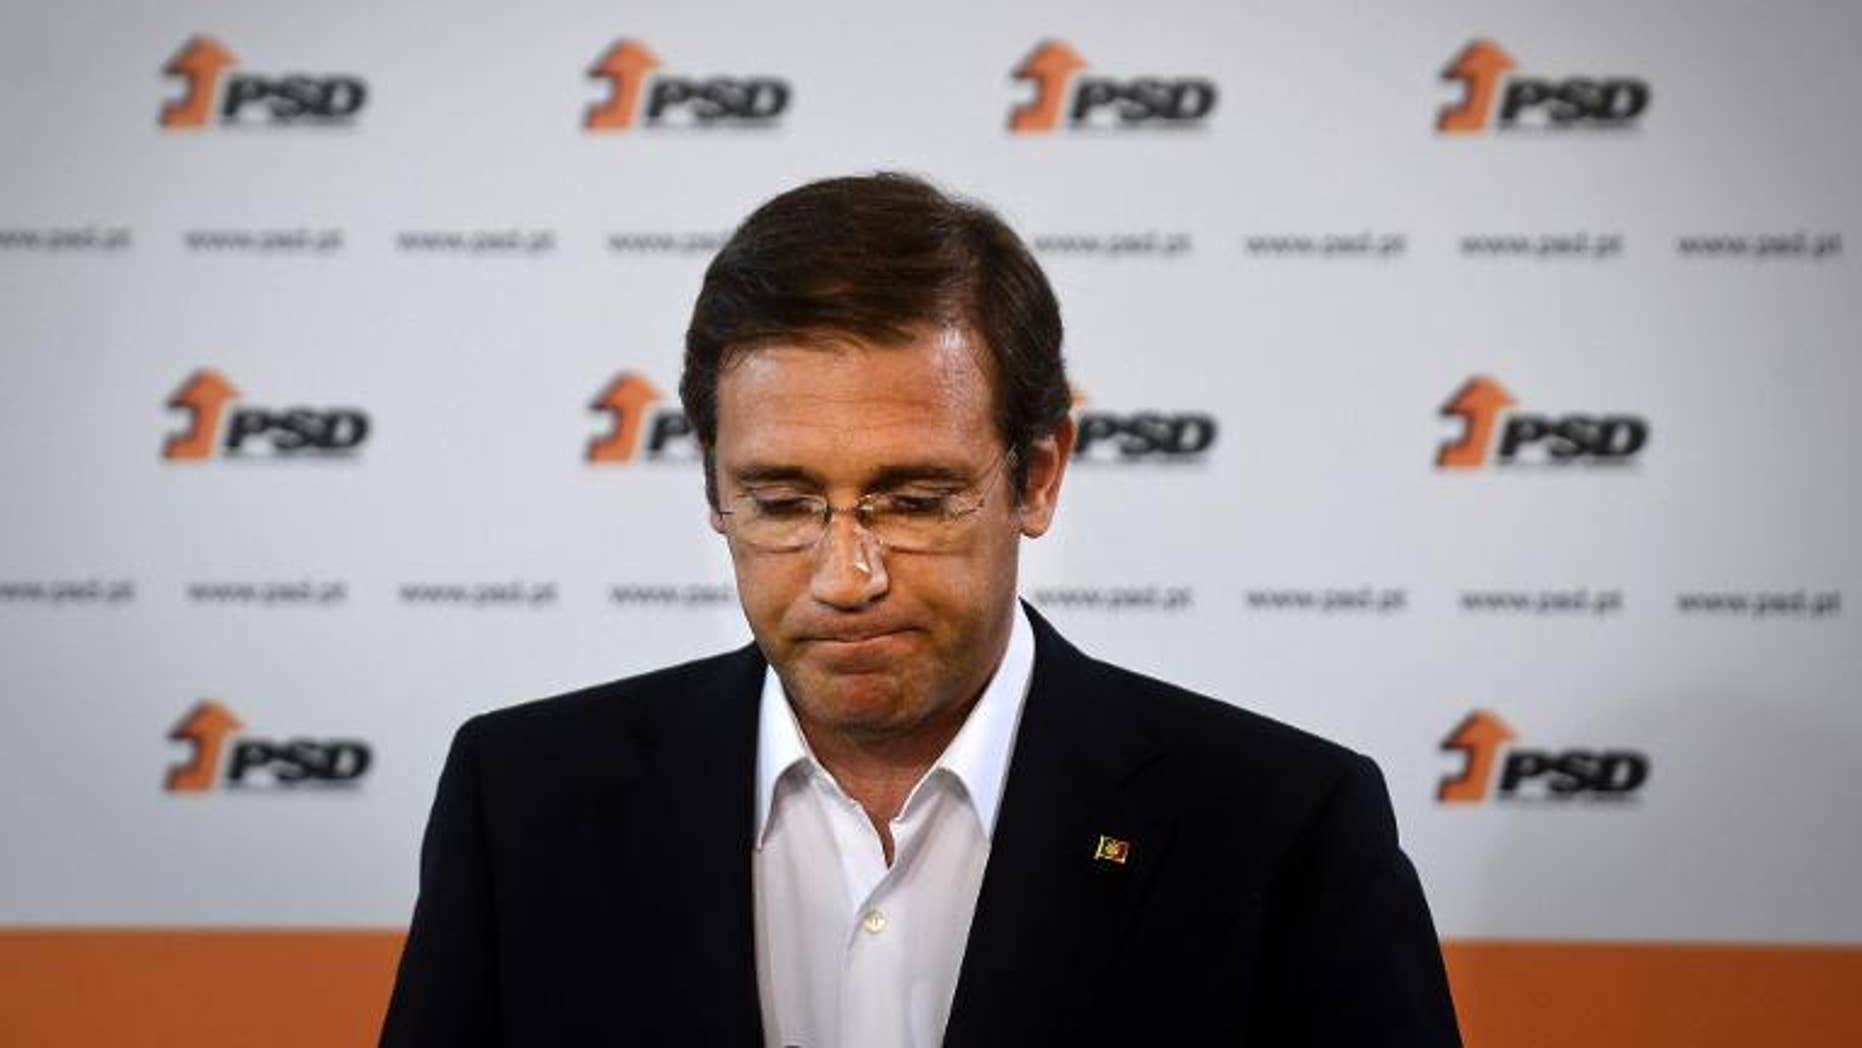 Portuguese Prime Minister Pedro Passos Coelho delivers a speech after the results of Portugal local elections in Lisbon, on September 29, 2013